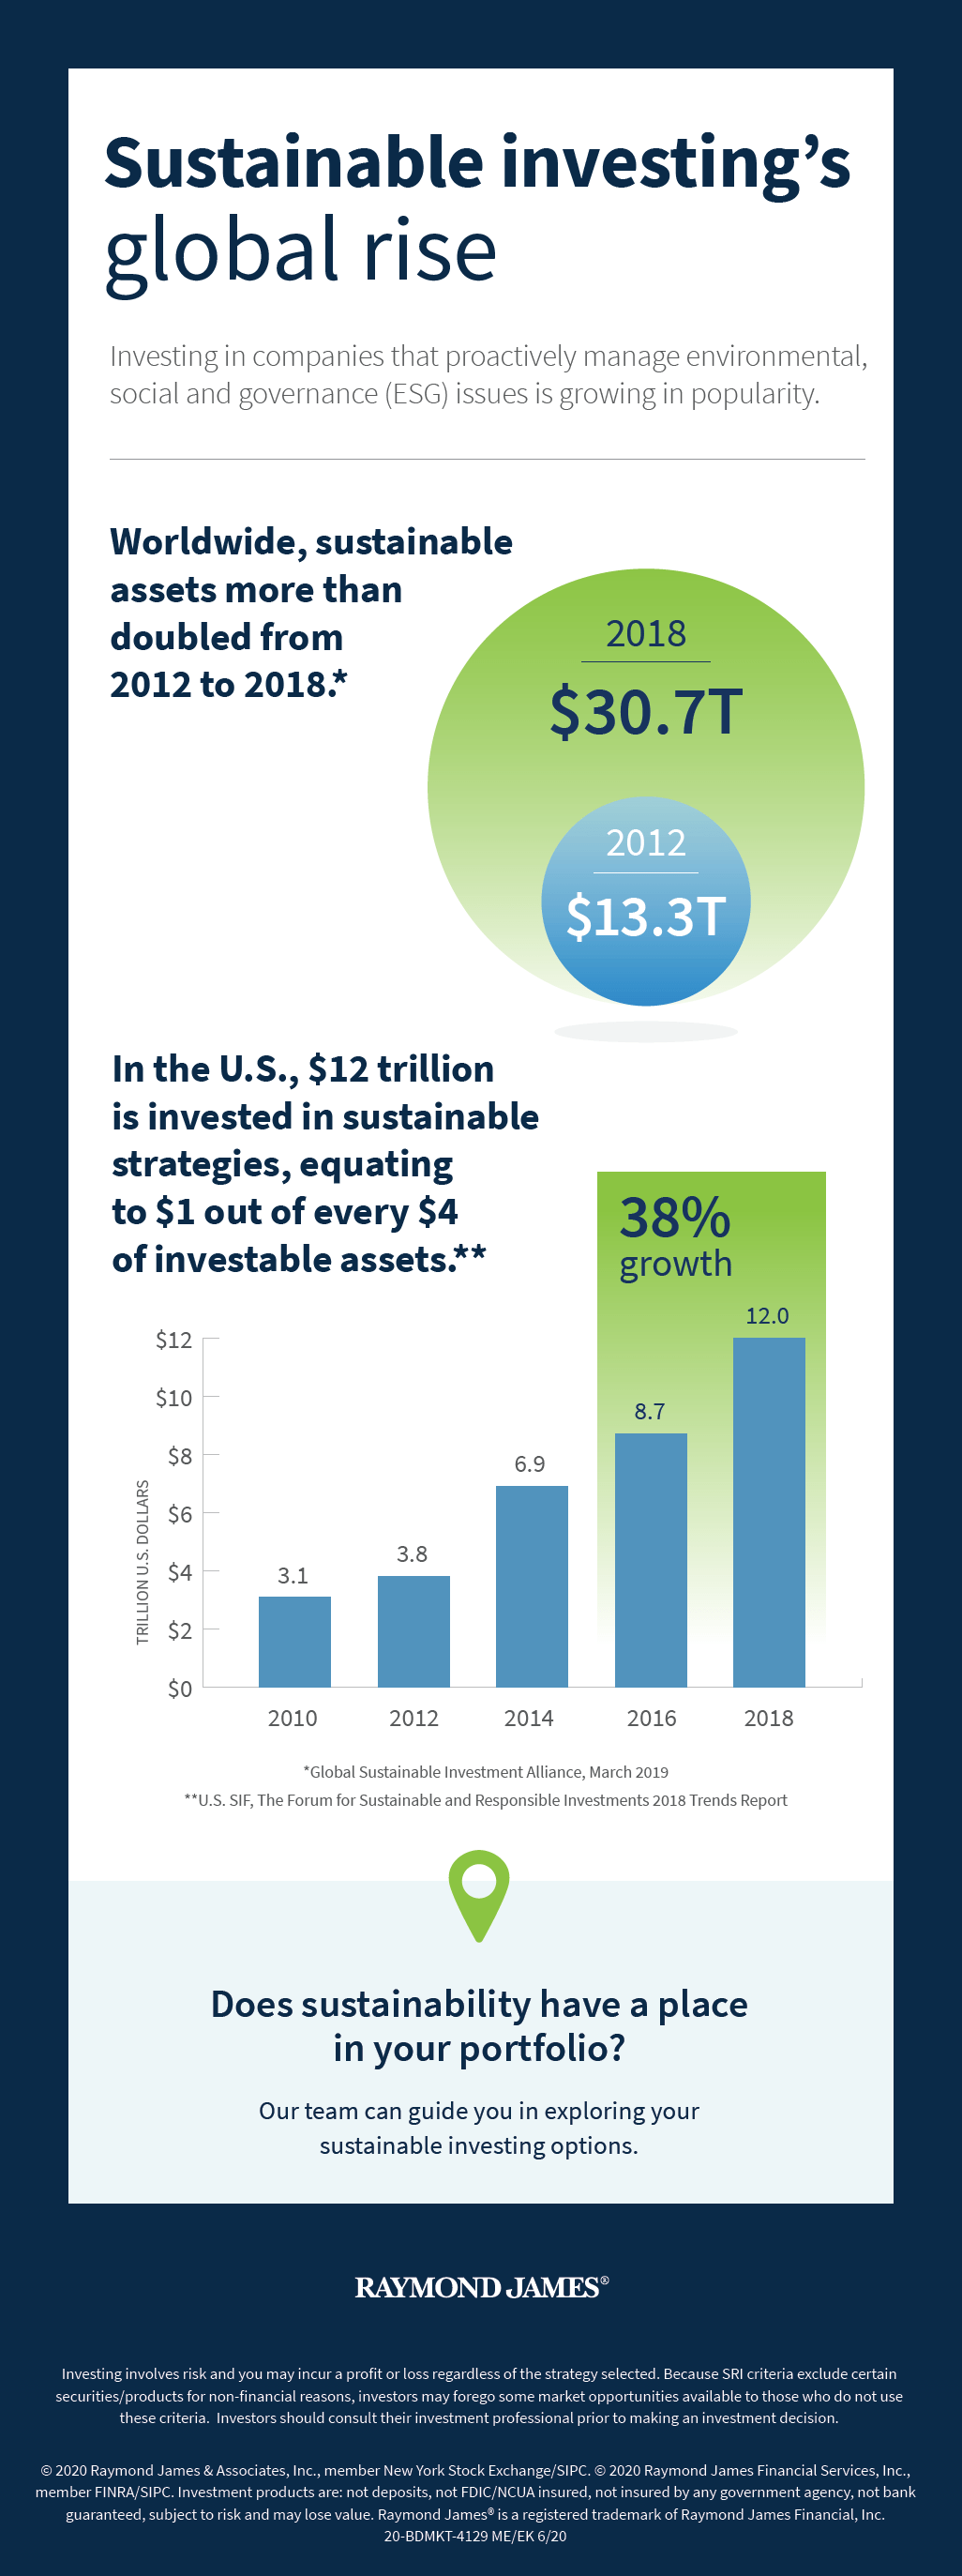 Sustainable investing's global rise